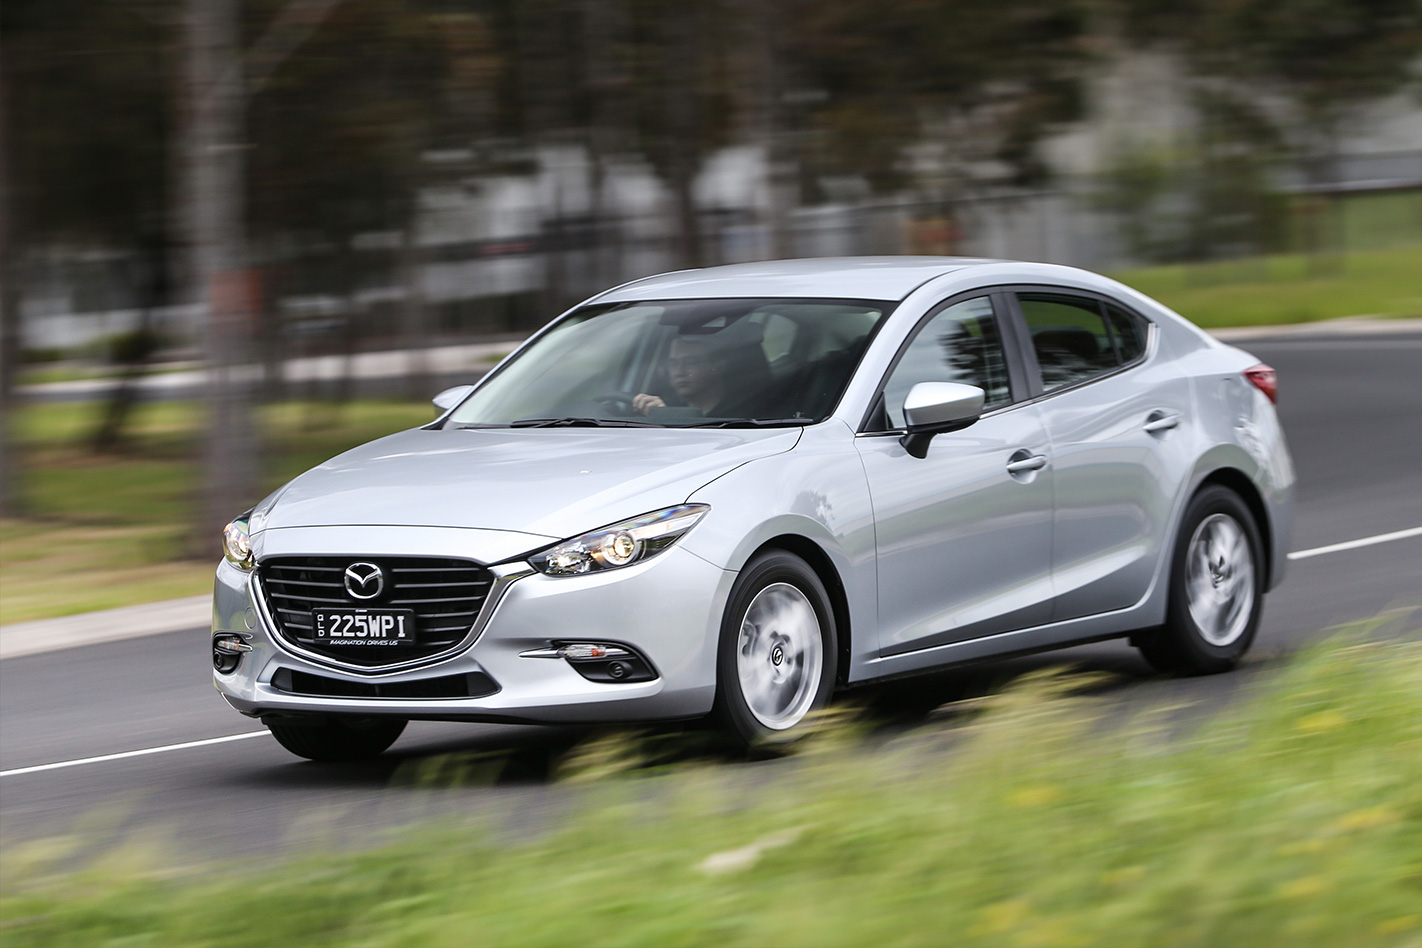 The Additions Make The Mazda 3 Neo Sport, Which Comes Standard With  Automatic Emergency Braking, More Than Just A Low Price Point To Bring  Buyers To The ...